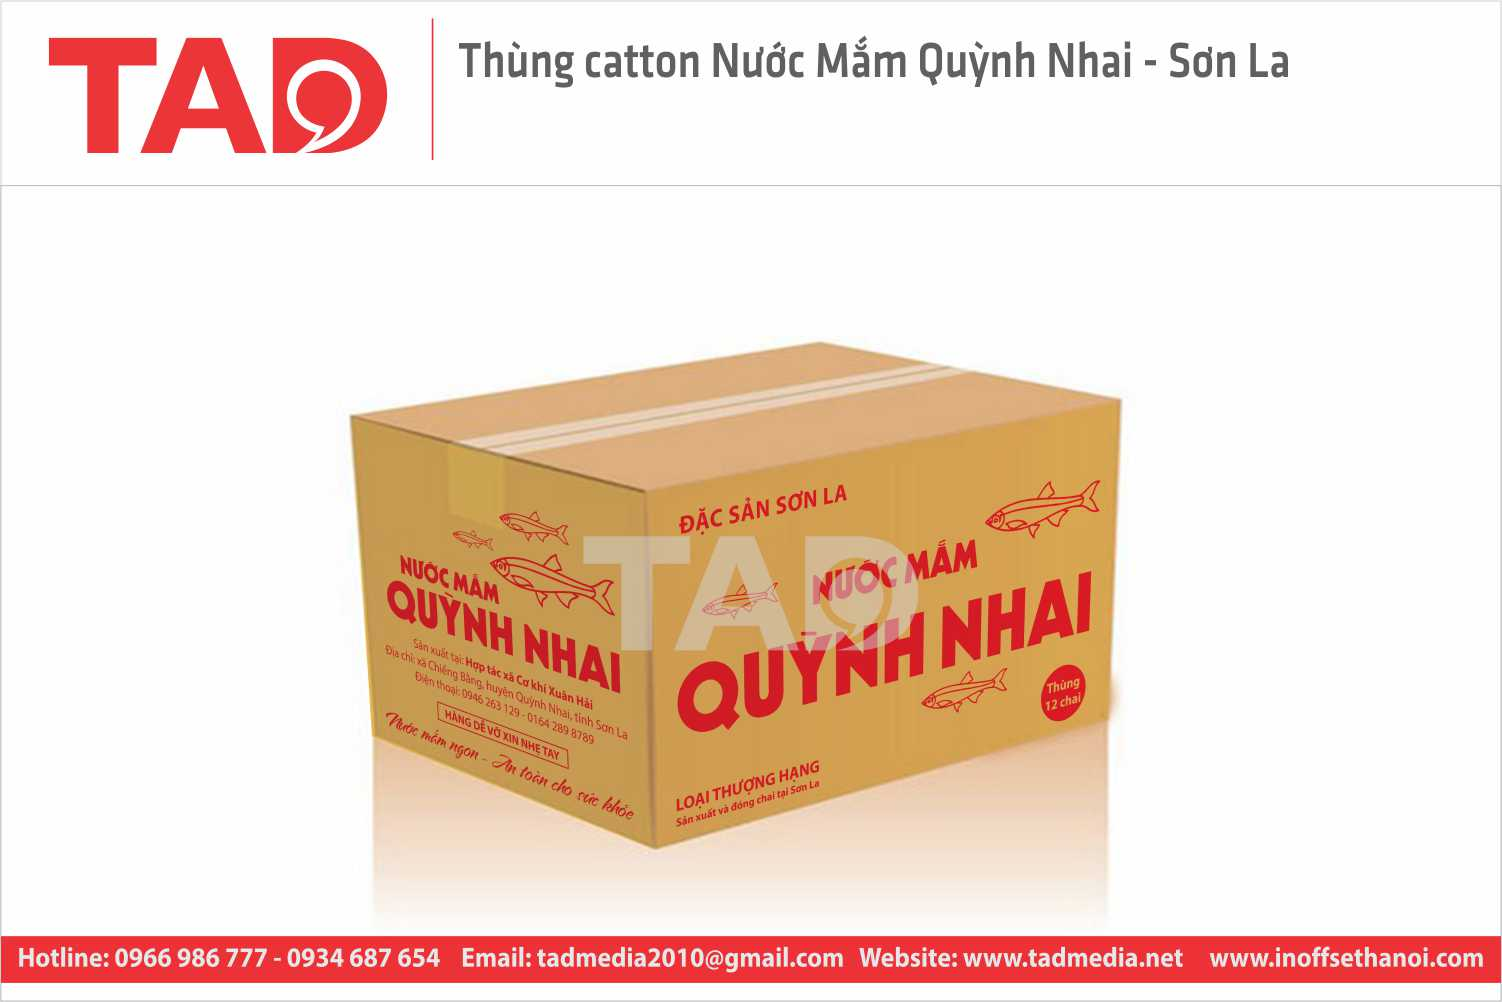 101 hop catton nuoc mam son la